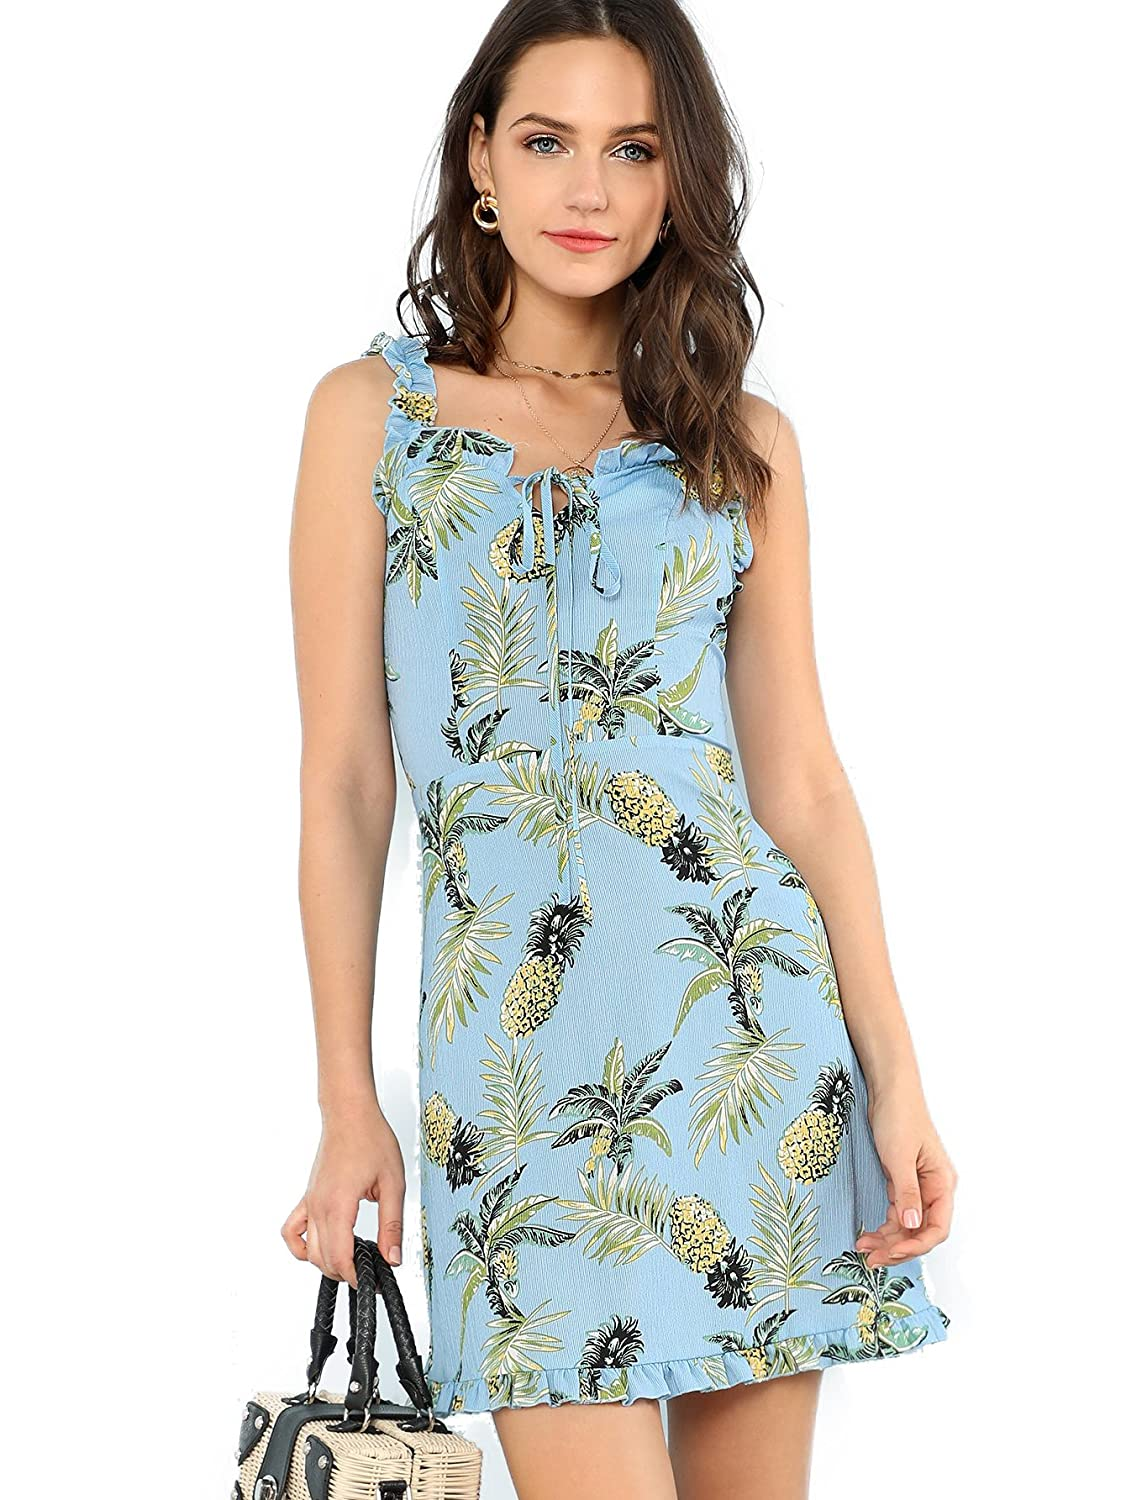 bluee Milumia Women's Pineapple Print Tie Neck Sleeveless Beach Short Mini Cami Dress